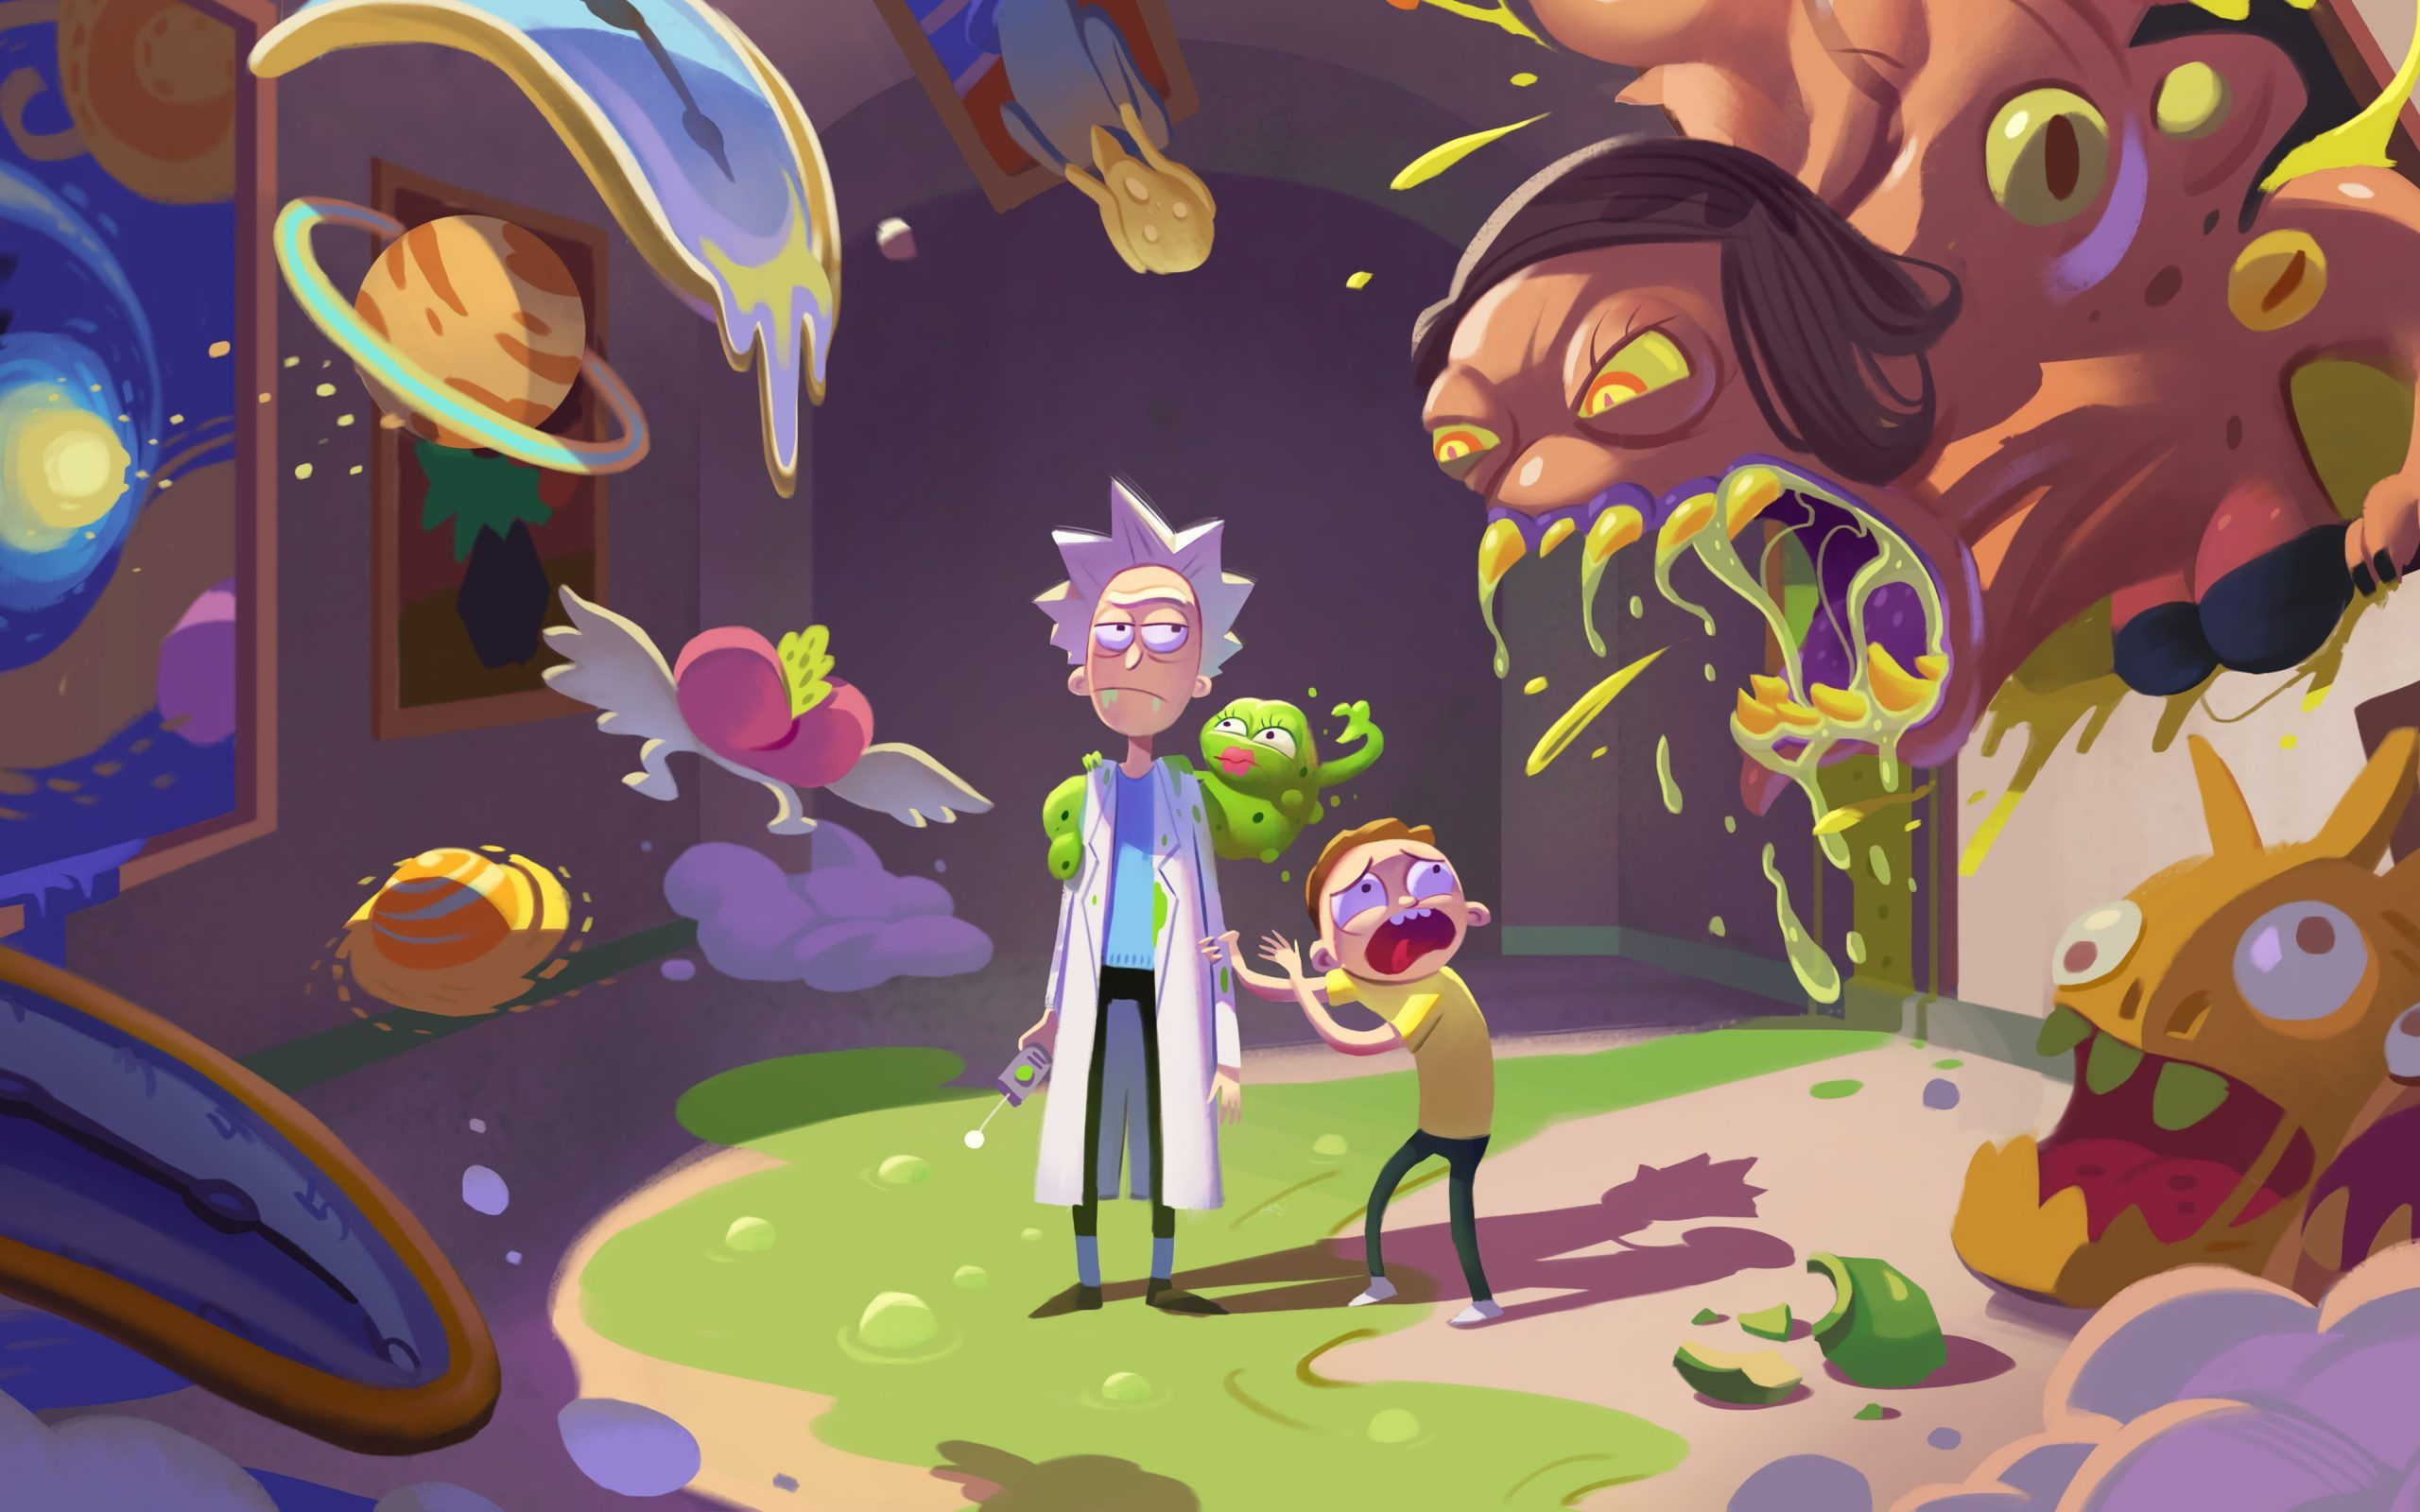 Rick And Morty Season 4 Wallpaper 4k Ultra Hd Id4114 Within The Incredible Rick Y Morty Wallpapers 4k In 2020 Cartoon Wallpaper Vaporwave Wallpaper Rick And Morty